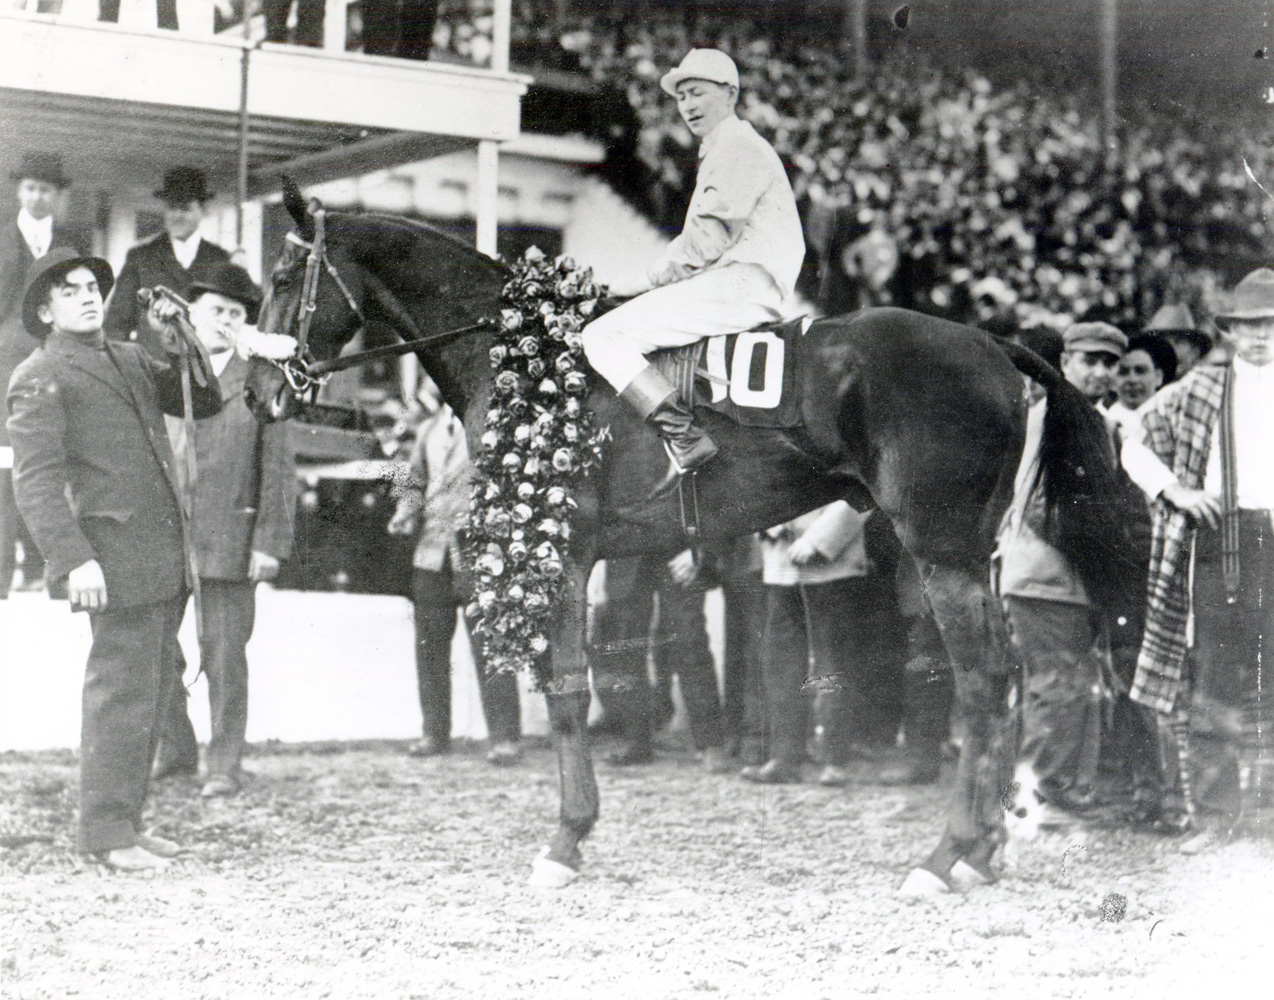 Old Rosebud (John McCabe up) in the winner's circle for the 1914 Kentucky Derby (Churchill Downs Inc./Kinetic Corp. /Museum Collection)